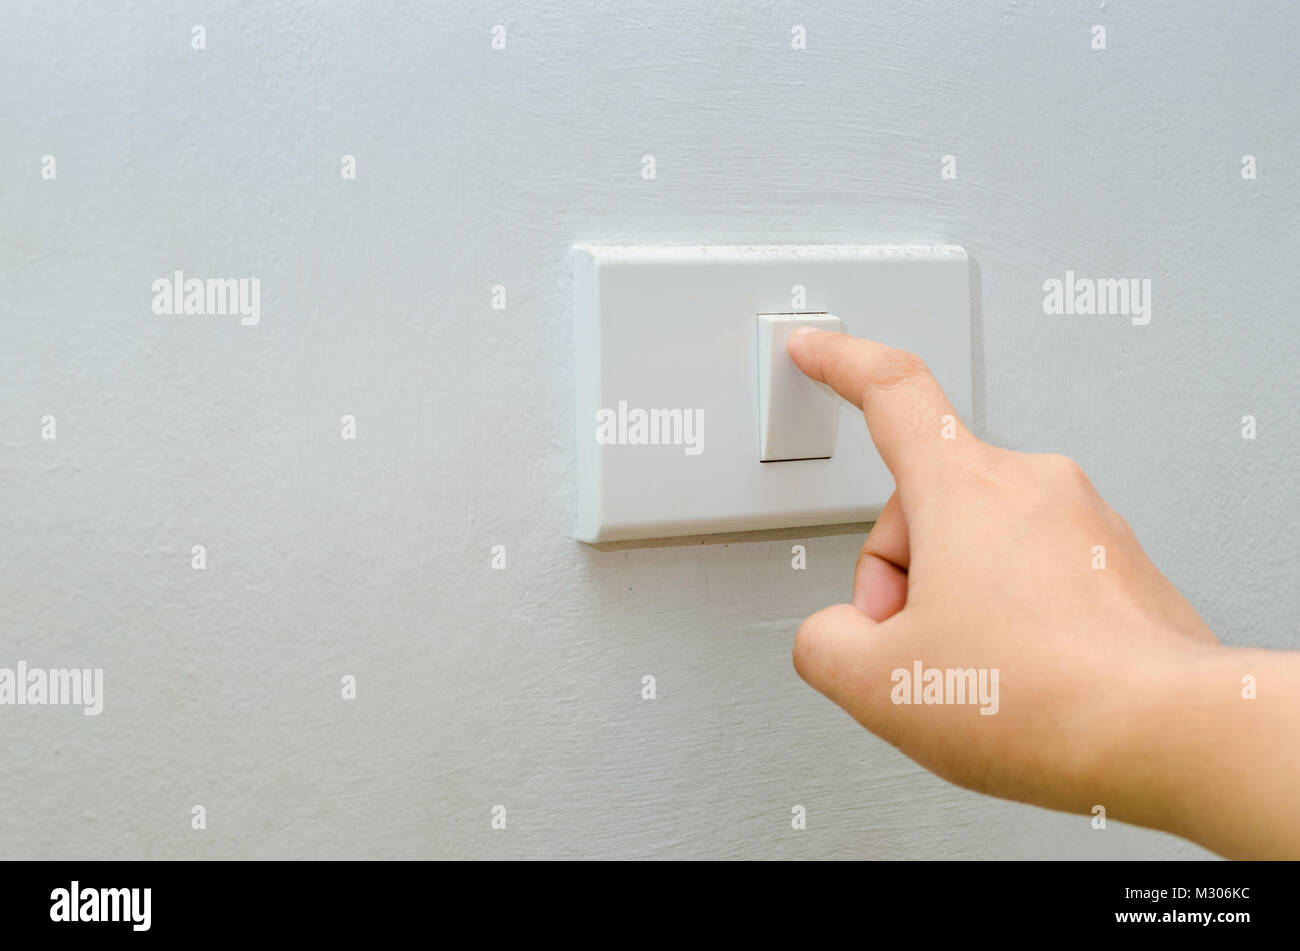 Light Switch Hand Stock Photos & Light Switch Hand Stock Images - Alamy